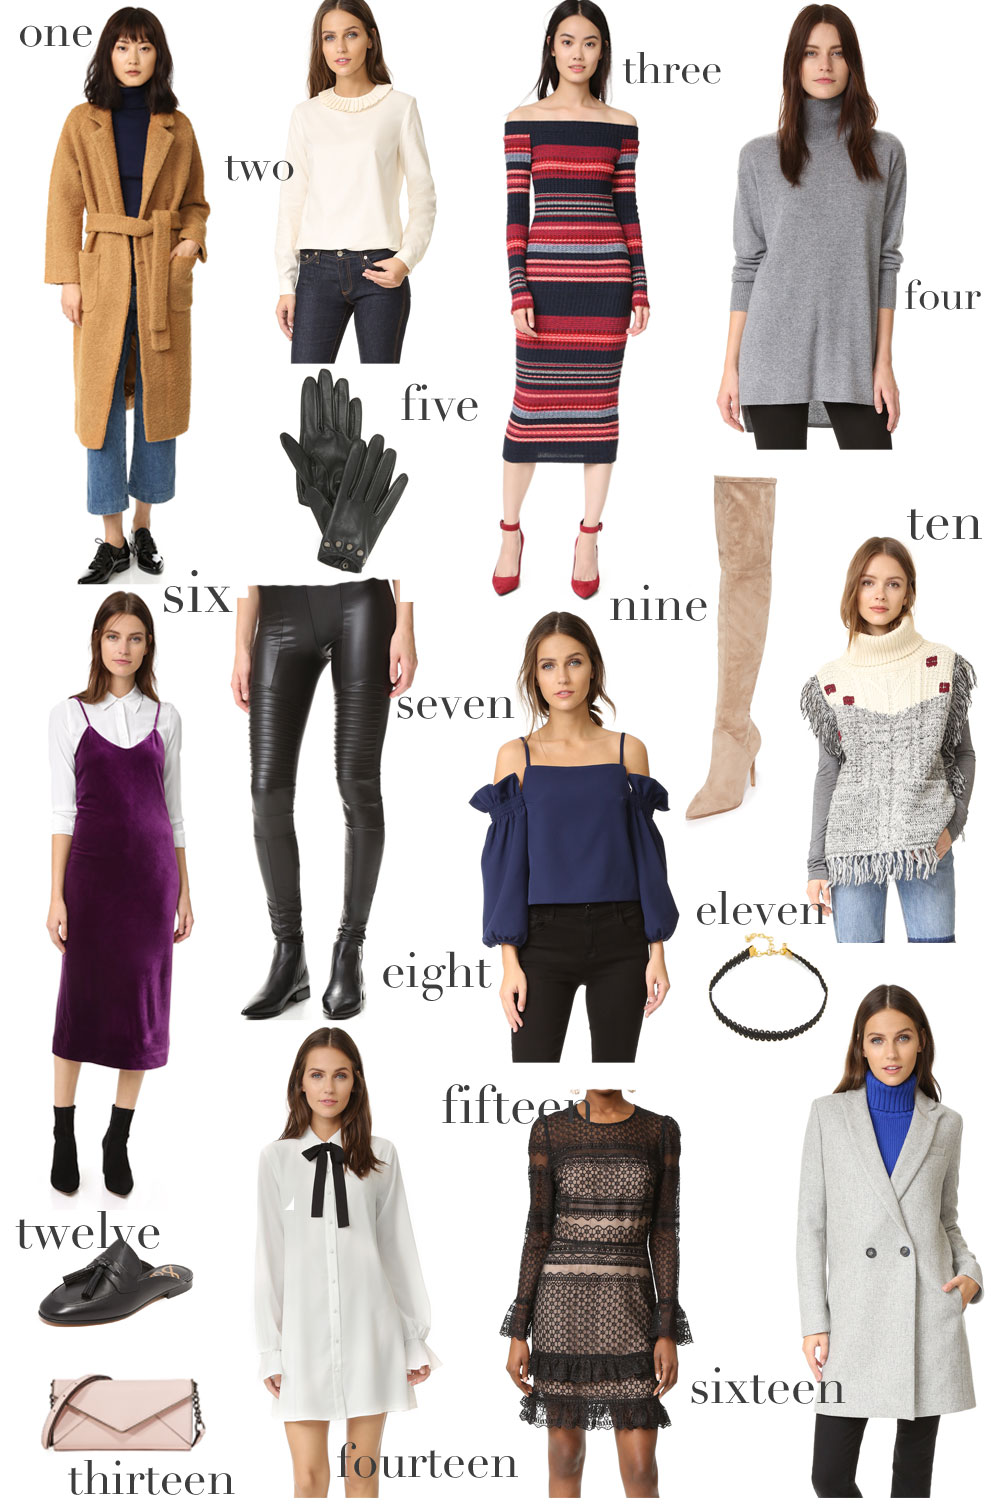 Shopbop Sale 2016 top picks from Leslie Musser on one brass fox